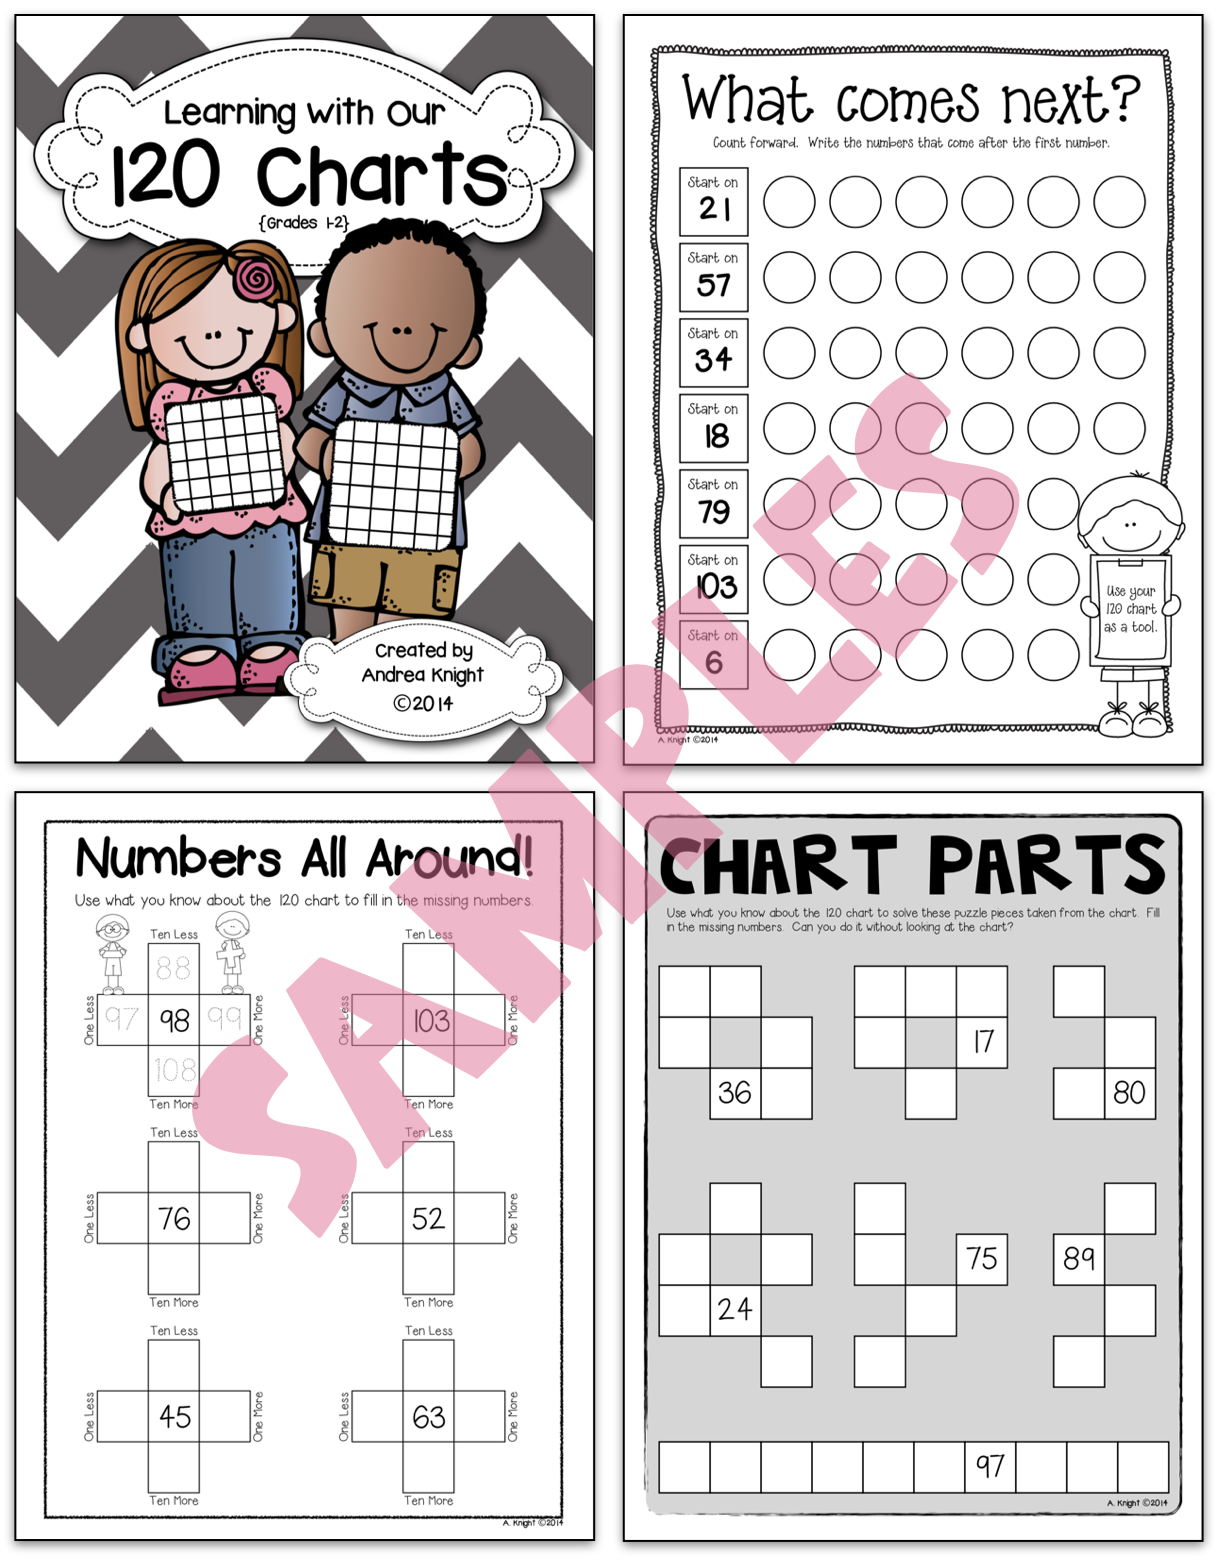 120 Charts Math Practice Worksheets For Grades 1 2